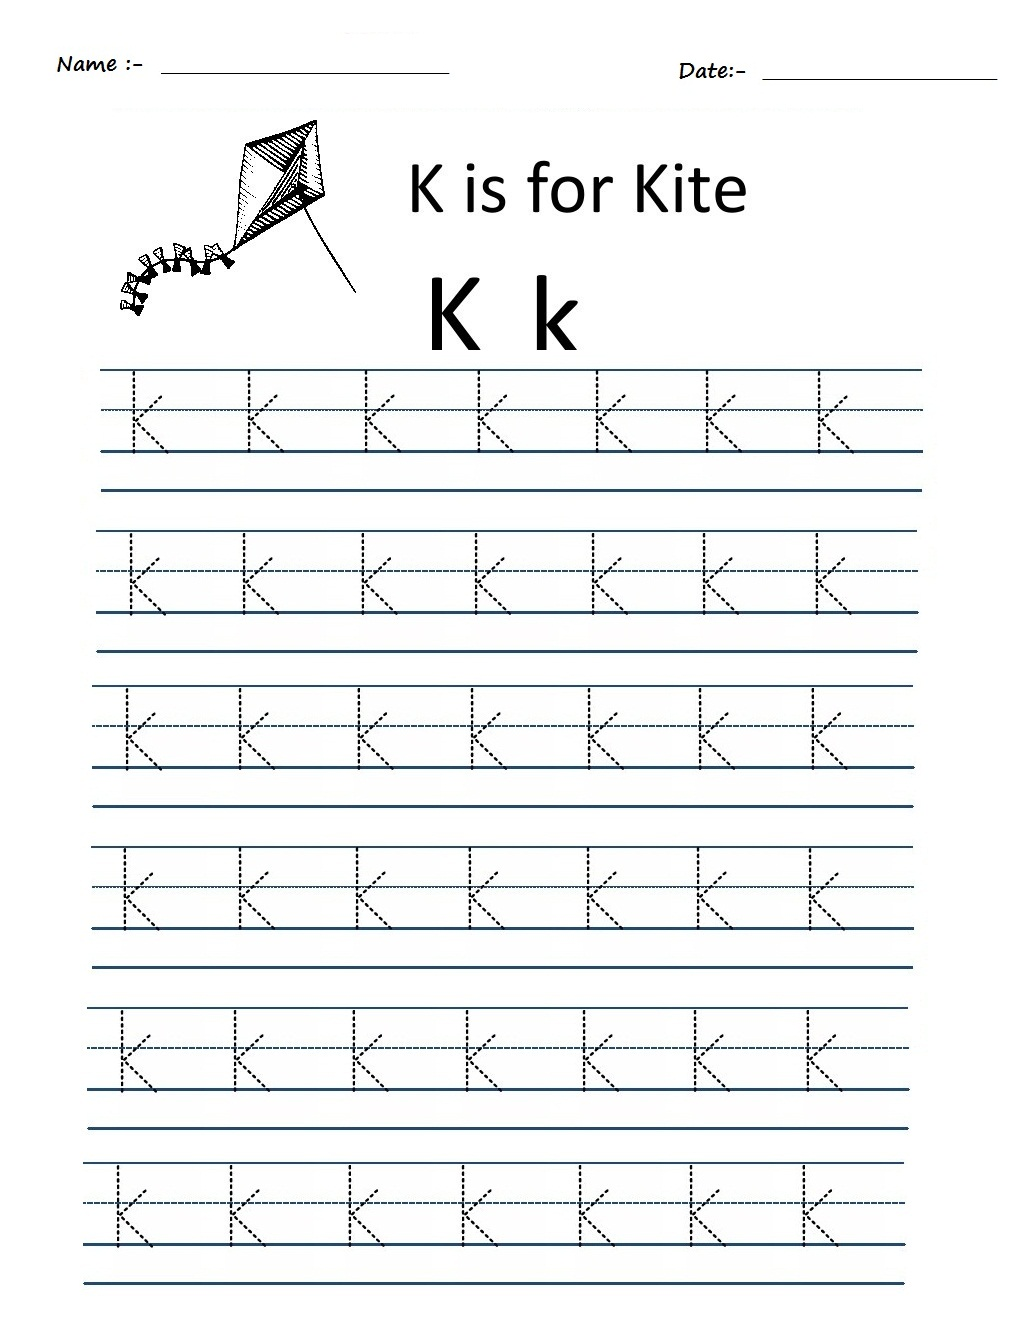 Worksheet Tracing The Letter K kindergarten worksheets alphabet tracing k